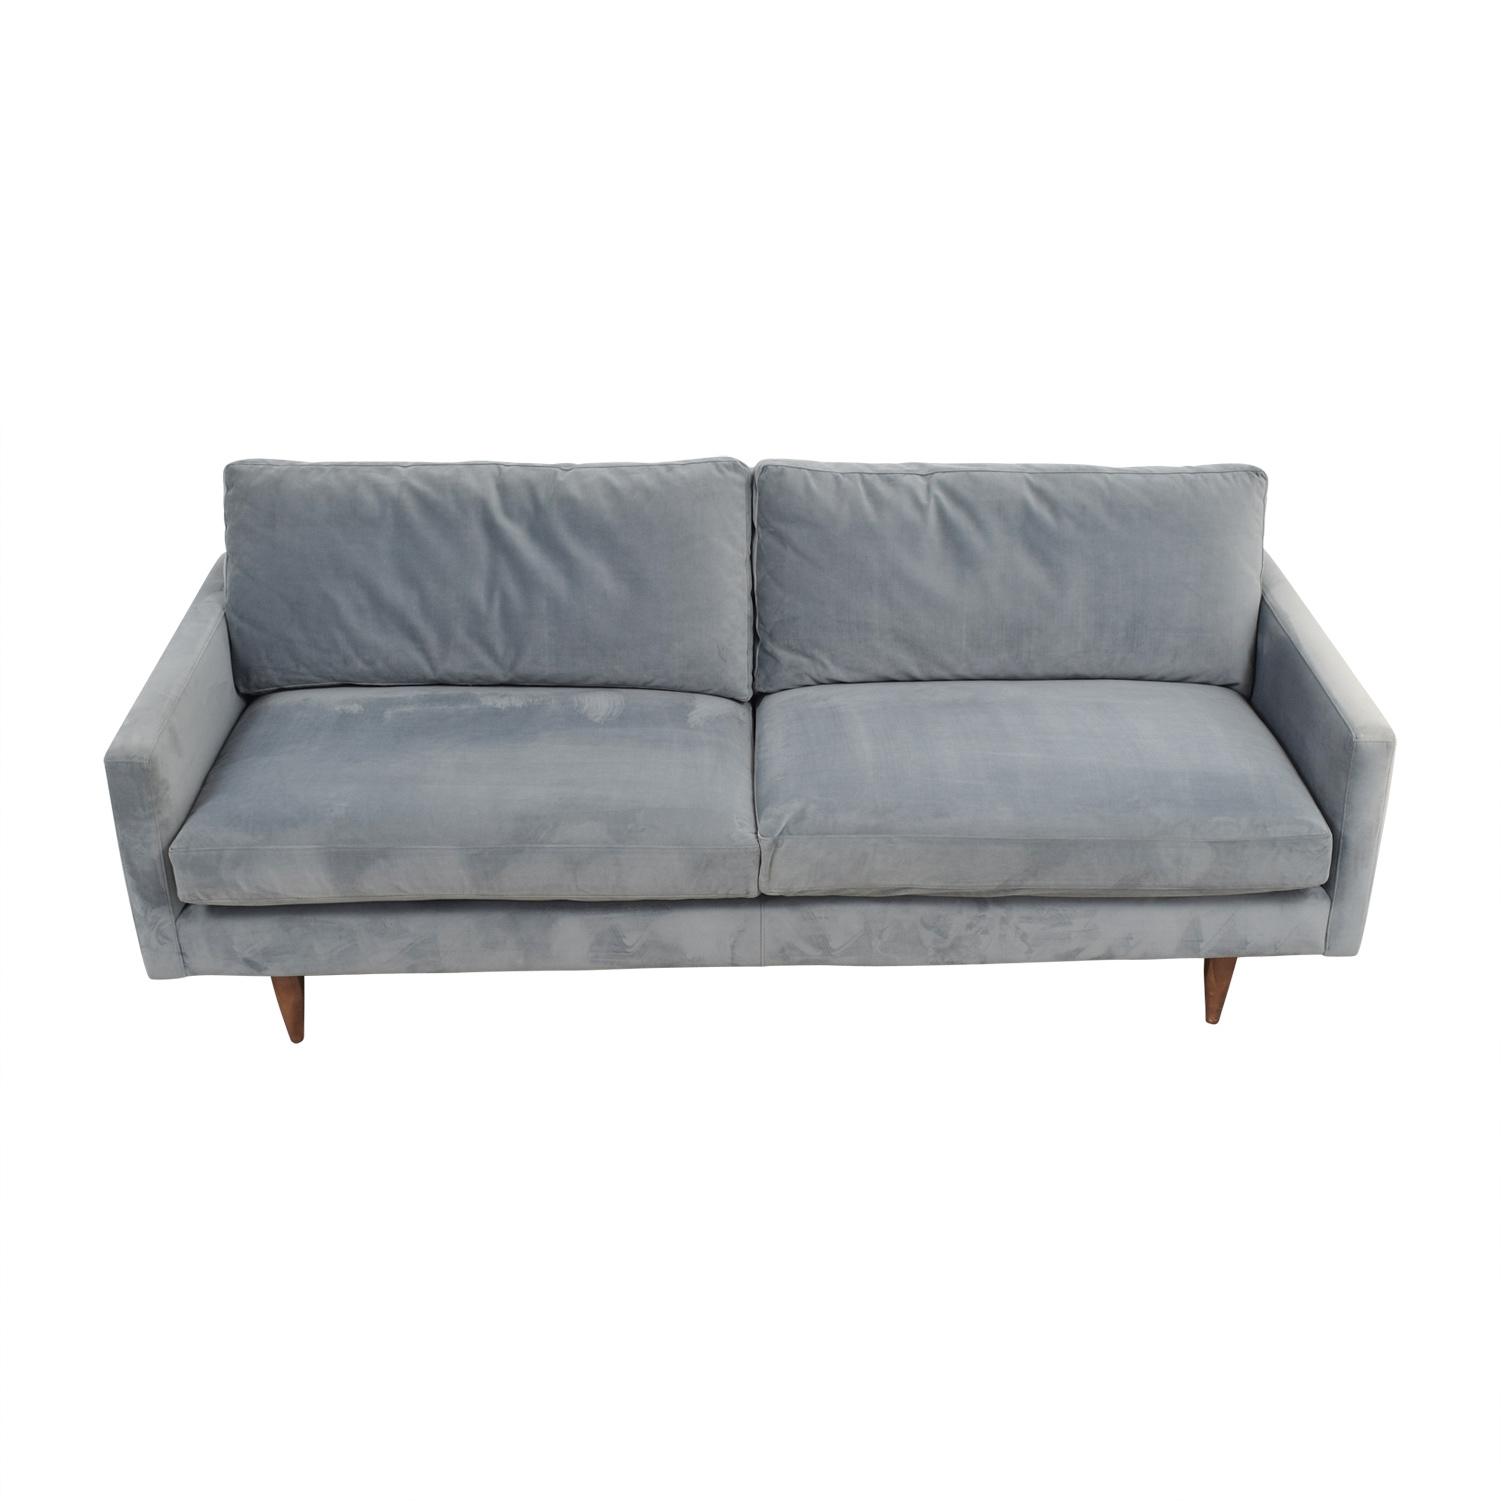 Room & Board Jasper Sofa in Slate Room & Board